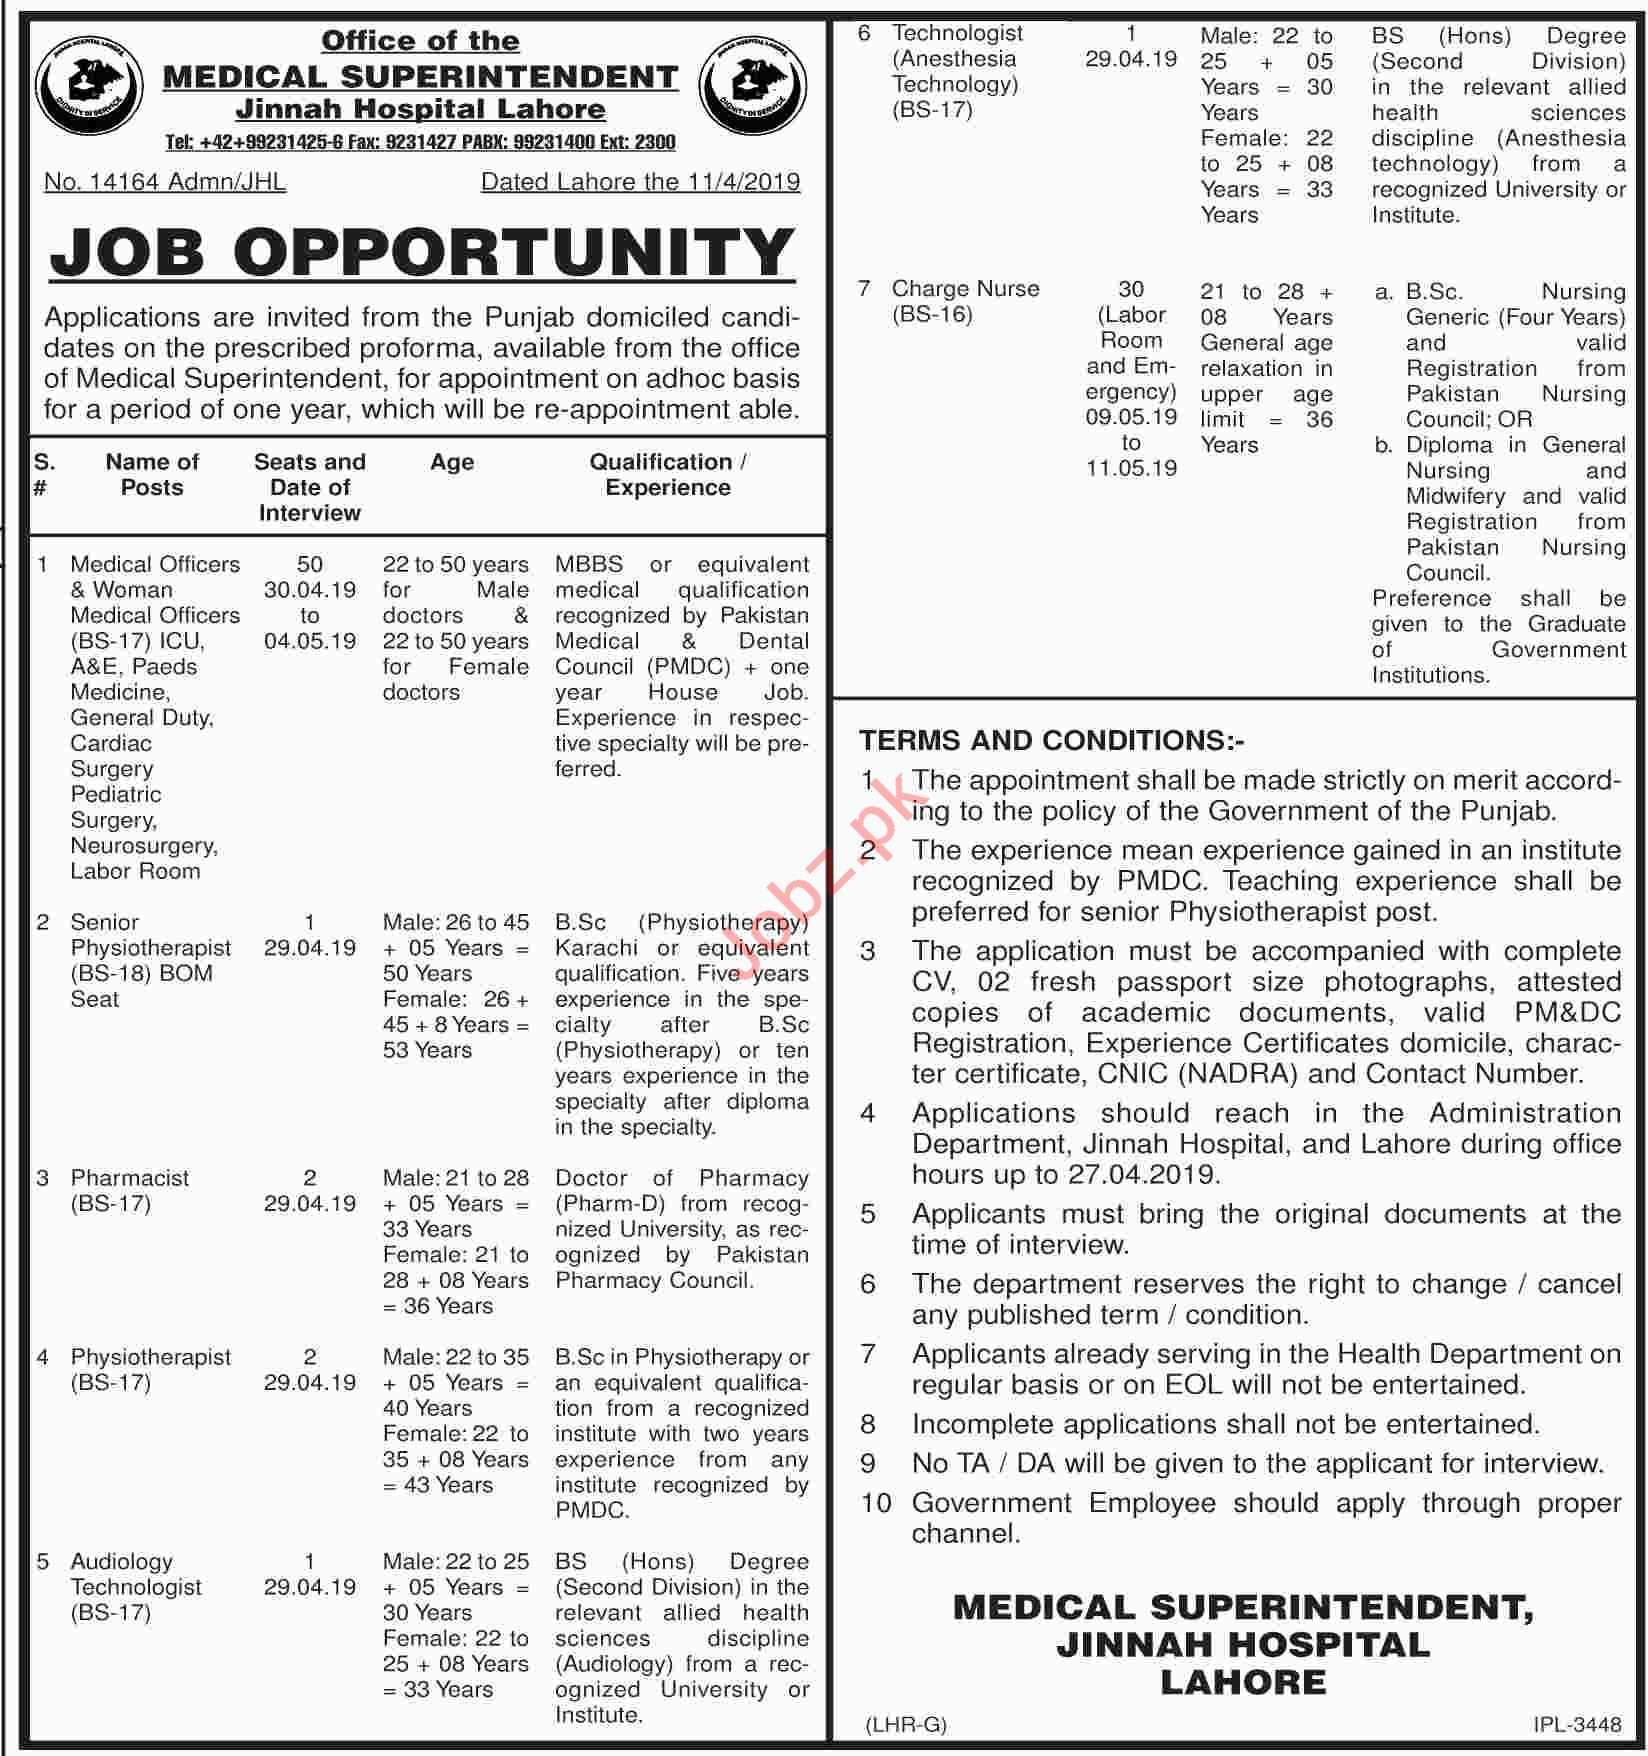 Jinnah Hospital Lahore Jobs Medical Officer & Technologist